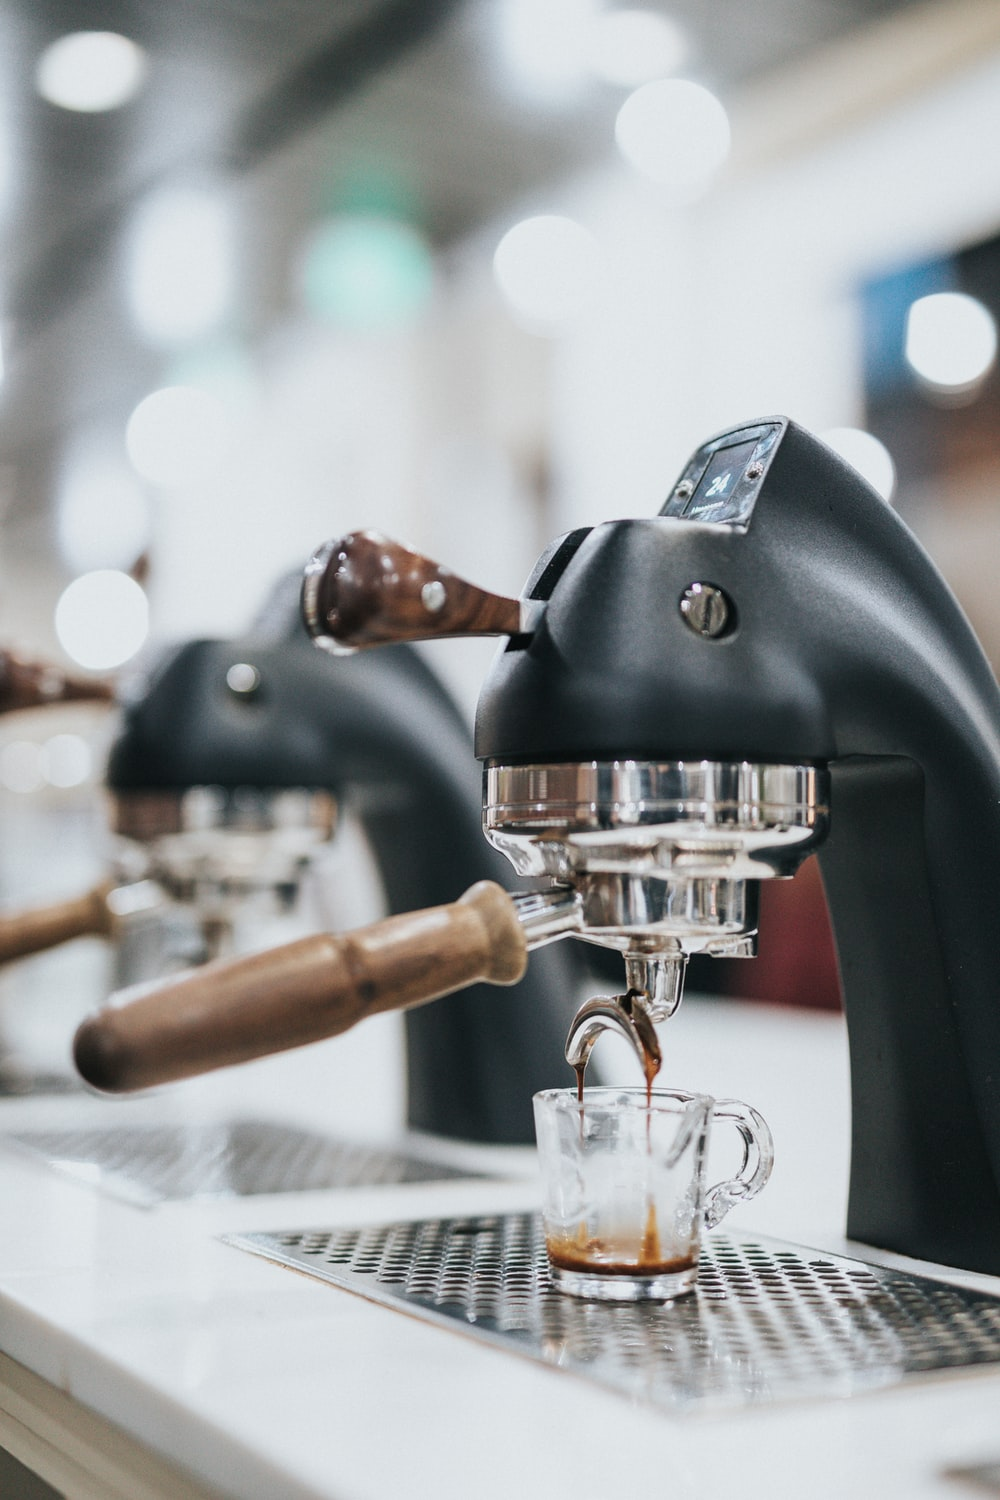 selective focus photography of black and gray espresso maker